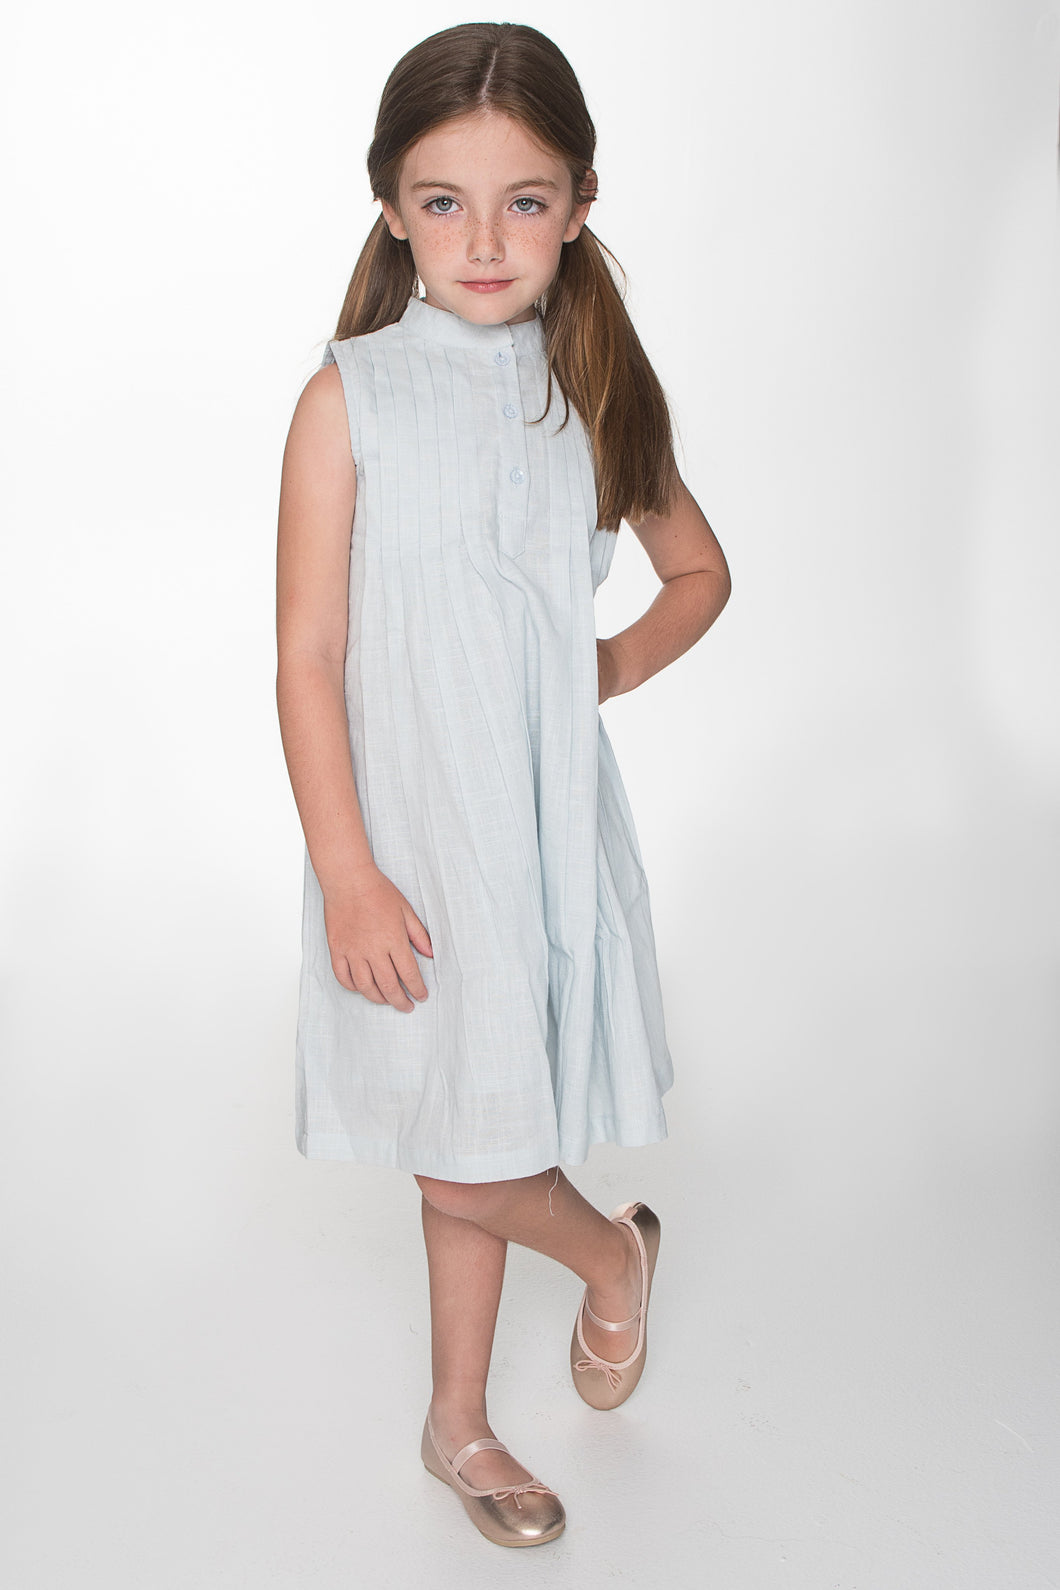 Light Blue Pin Tuck Detail Shift Dress - Kids Clothing, Dress - Girls Dress, Yo Baby Online - Yo Baby